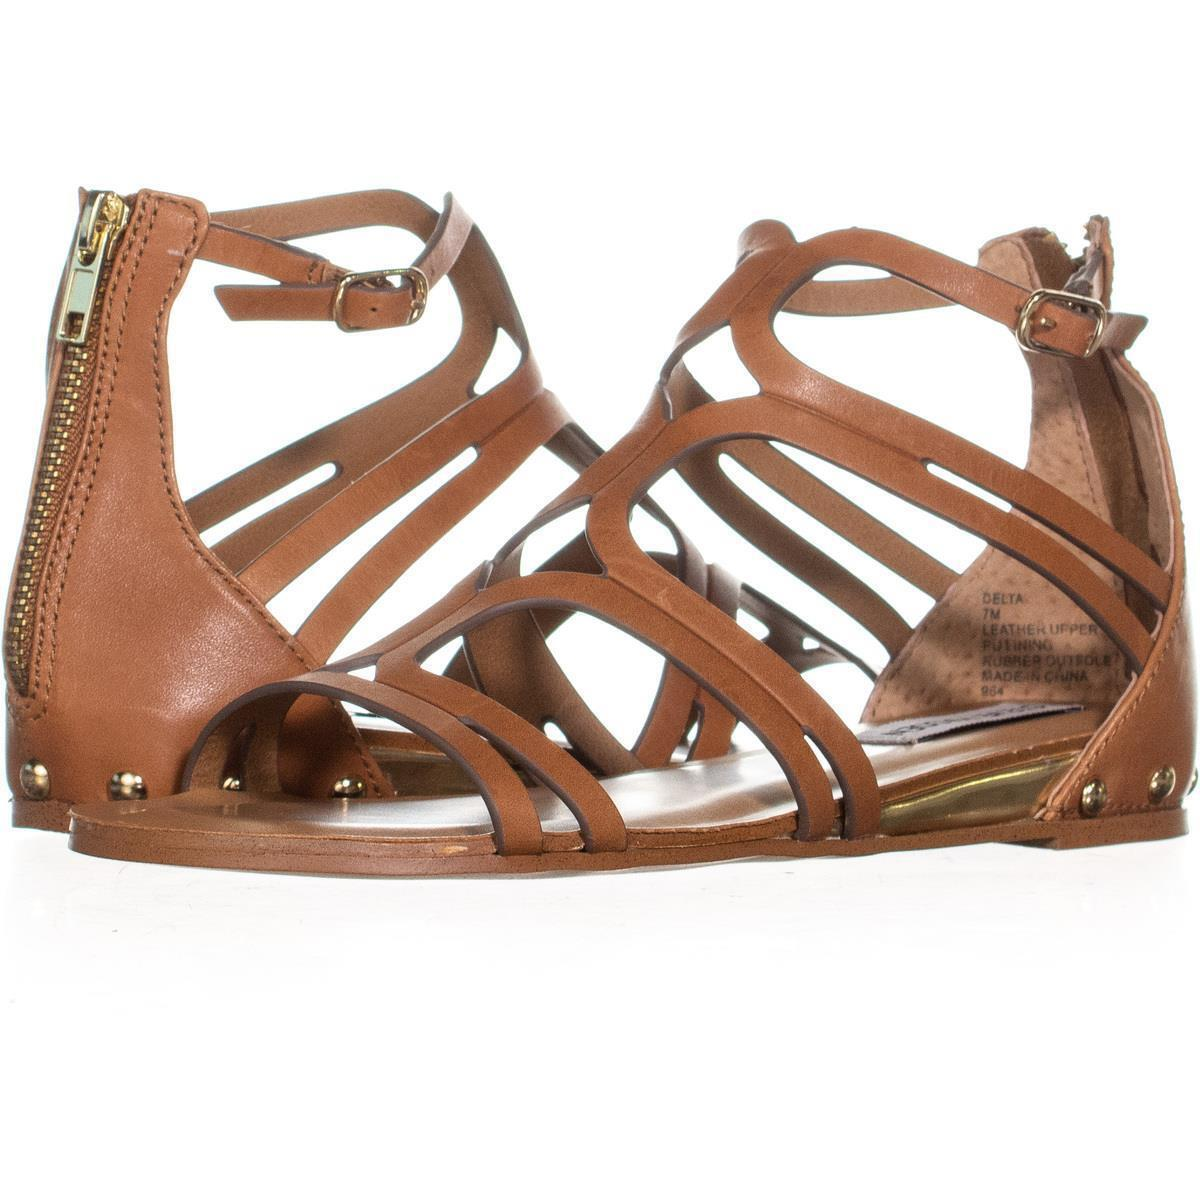 Steve Madden Delta damen Flat Sandals Gladiator schuhe Tan Leather Boxed New  | Online Outlet Shop